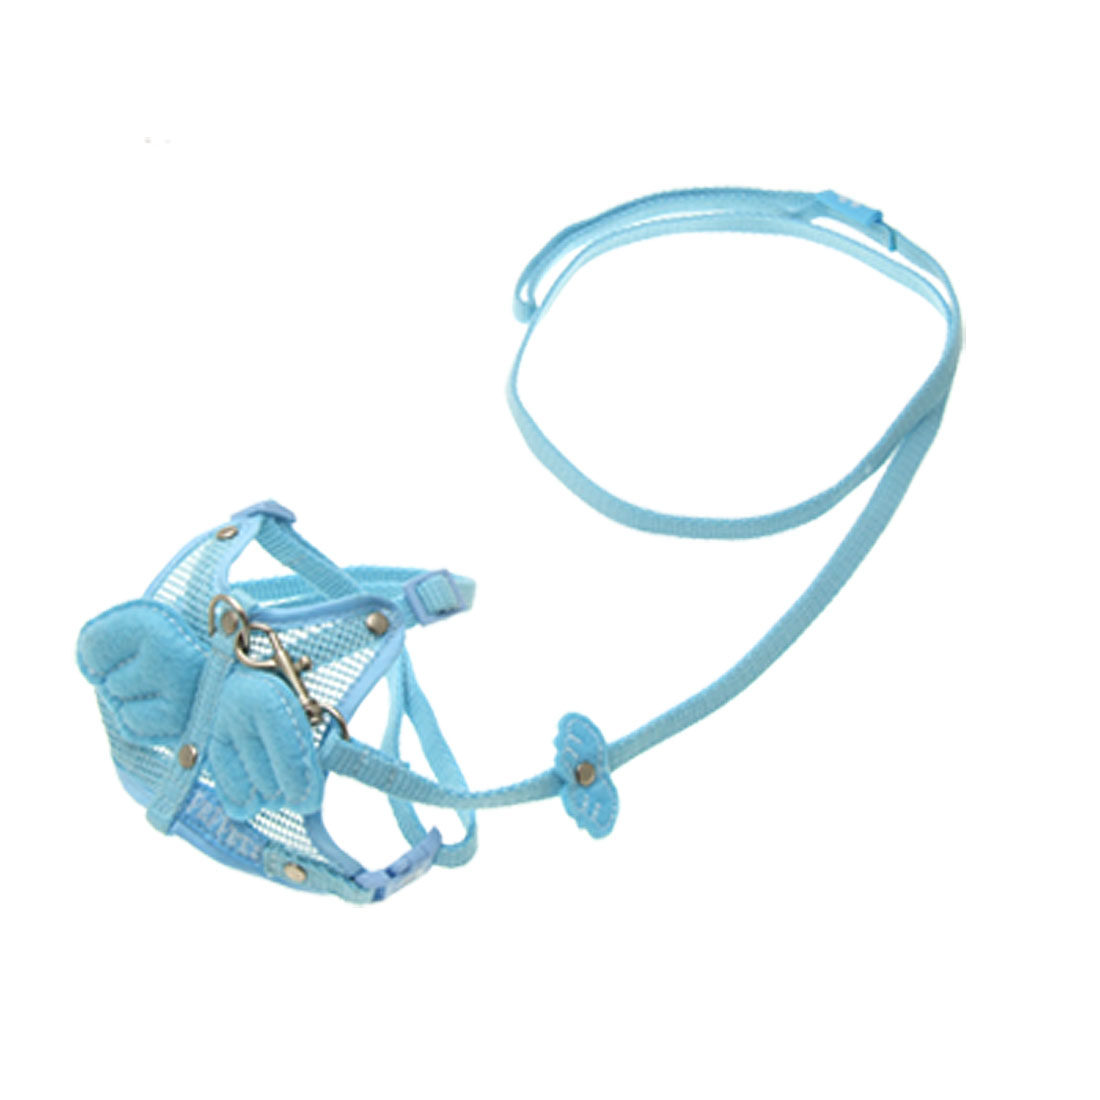 Angel Wing Decor Cat Dog Safety Harness Vest Leash Outdoor Strap Sky Blue Size S